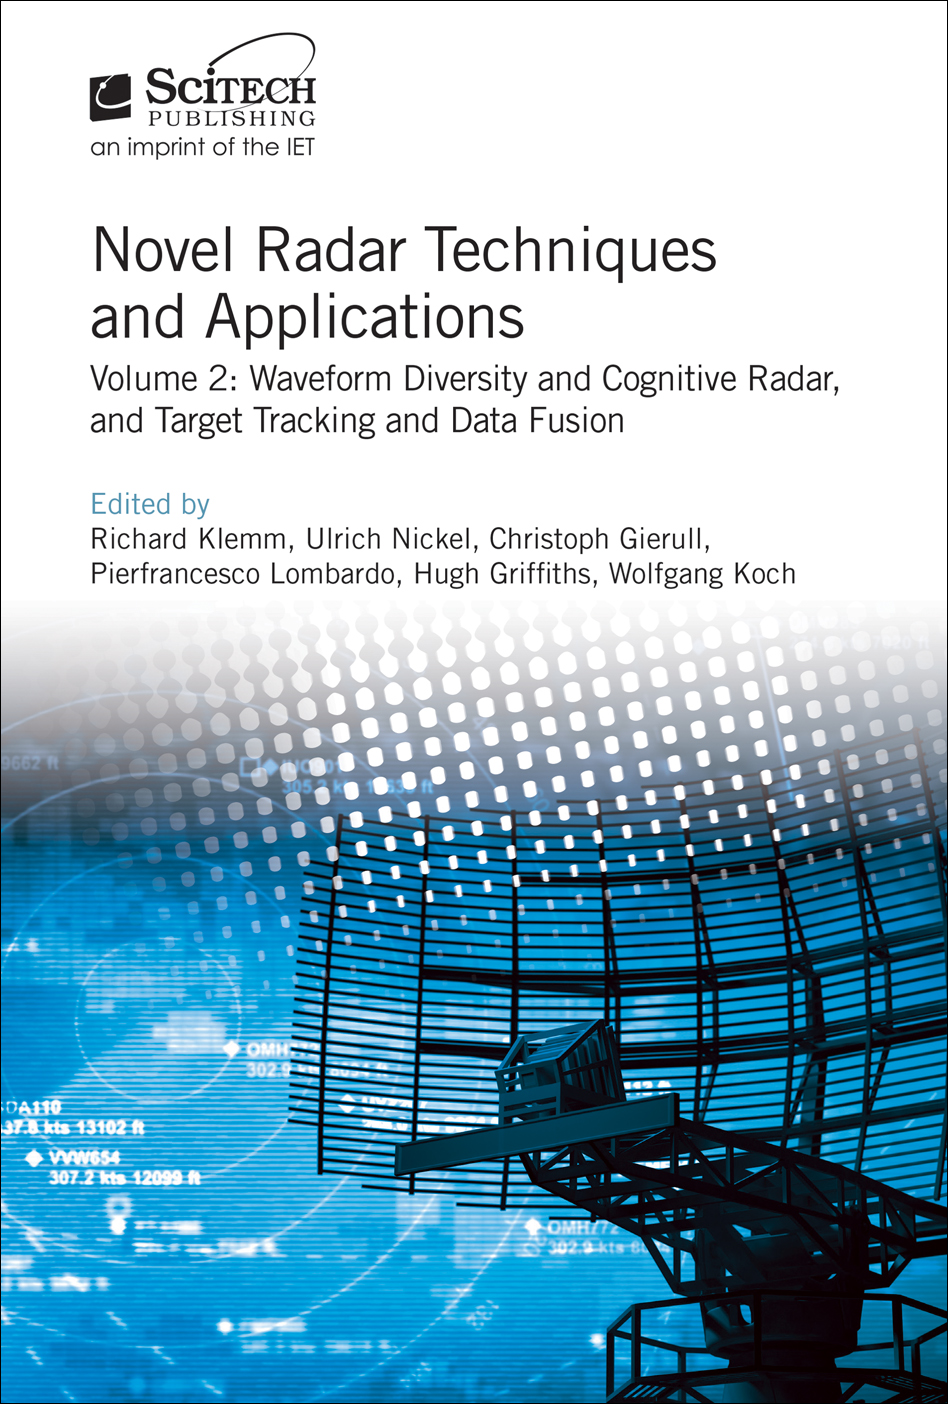 Novel Radar Techniques and Applications, Volume 2: Waveform diversity and cognitive radar and Target tracking and data fusion